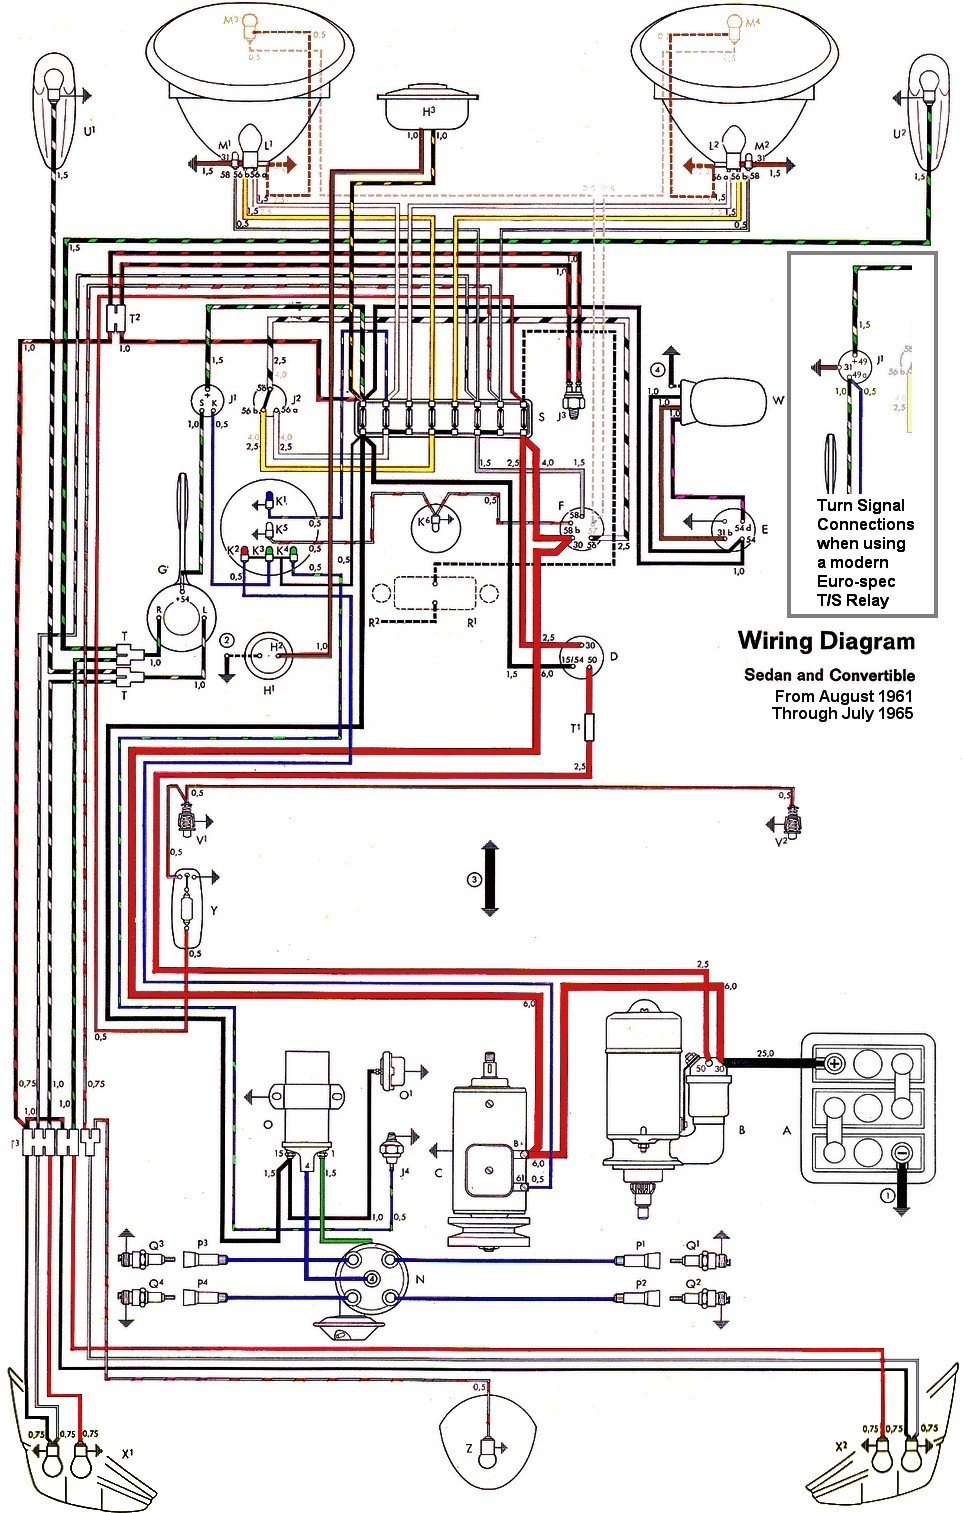 thesamba com type 1 wiring diagrams rh thesamba com 2006 vw jetta door wiring harness diagram VW Alternator Wiring Diagram